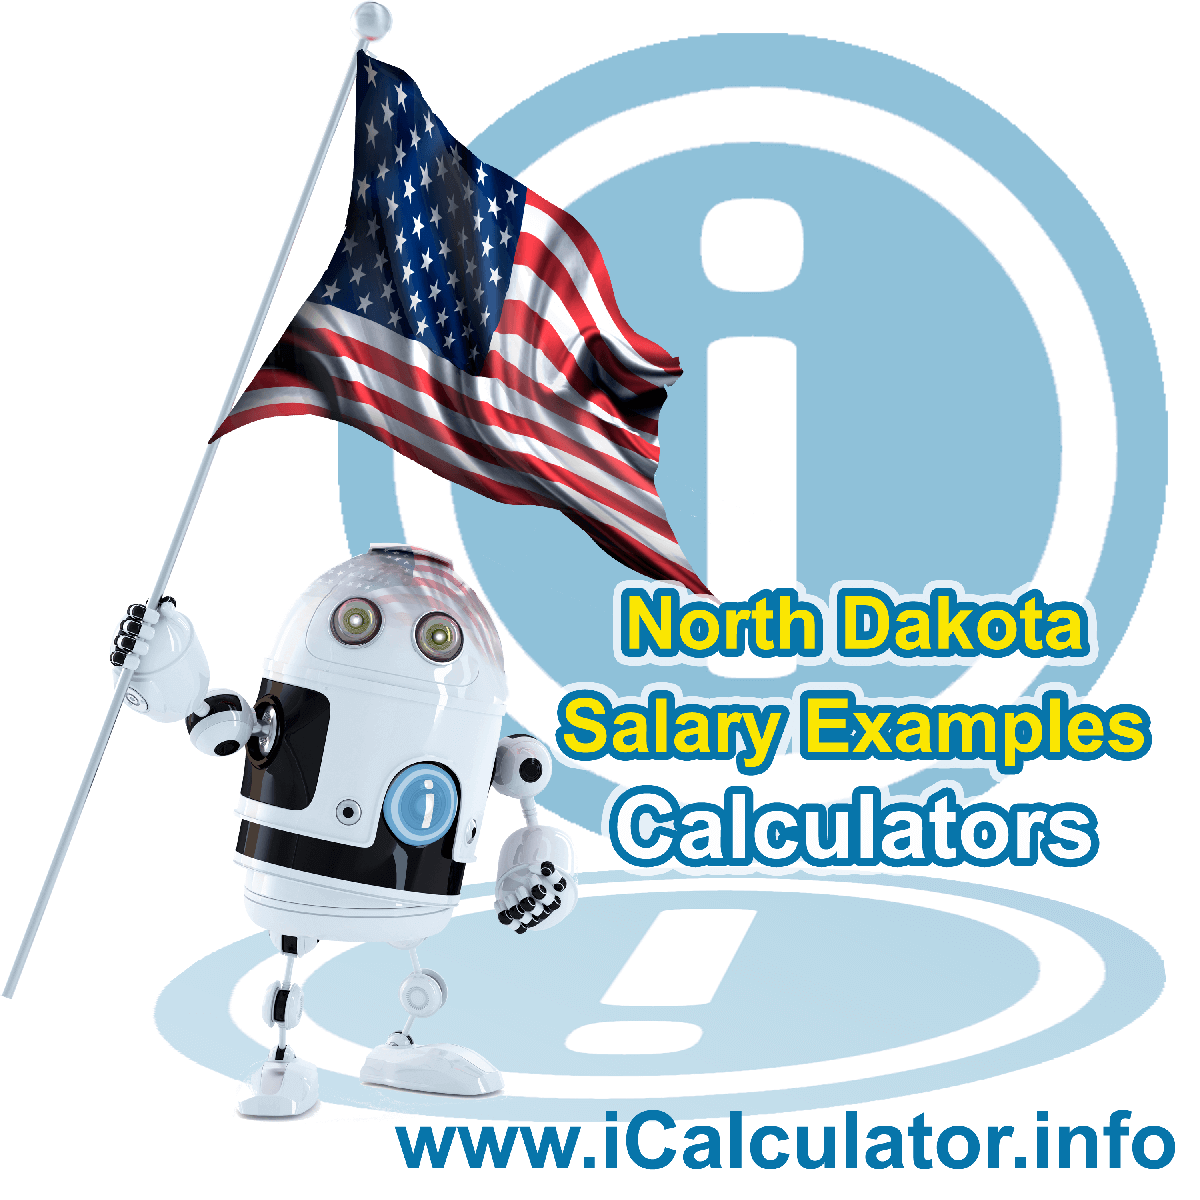 North Dakota Salary Example for a $145.00 Annual Salary in 2020 | iCalculator | $145.00 salary example for employee and employer paying North Dakota State tincome taxes. Detailed salary after tax calculation including North Dakota State Tax, Federal State Tax, Medicare Deductions, Social Security, Capital Gains and other income tax and salary deductions complete with supporting North Dakota state tax tables